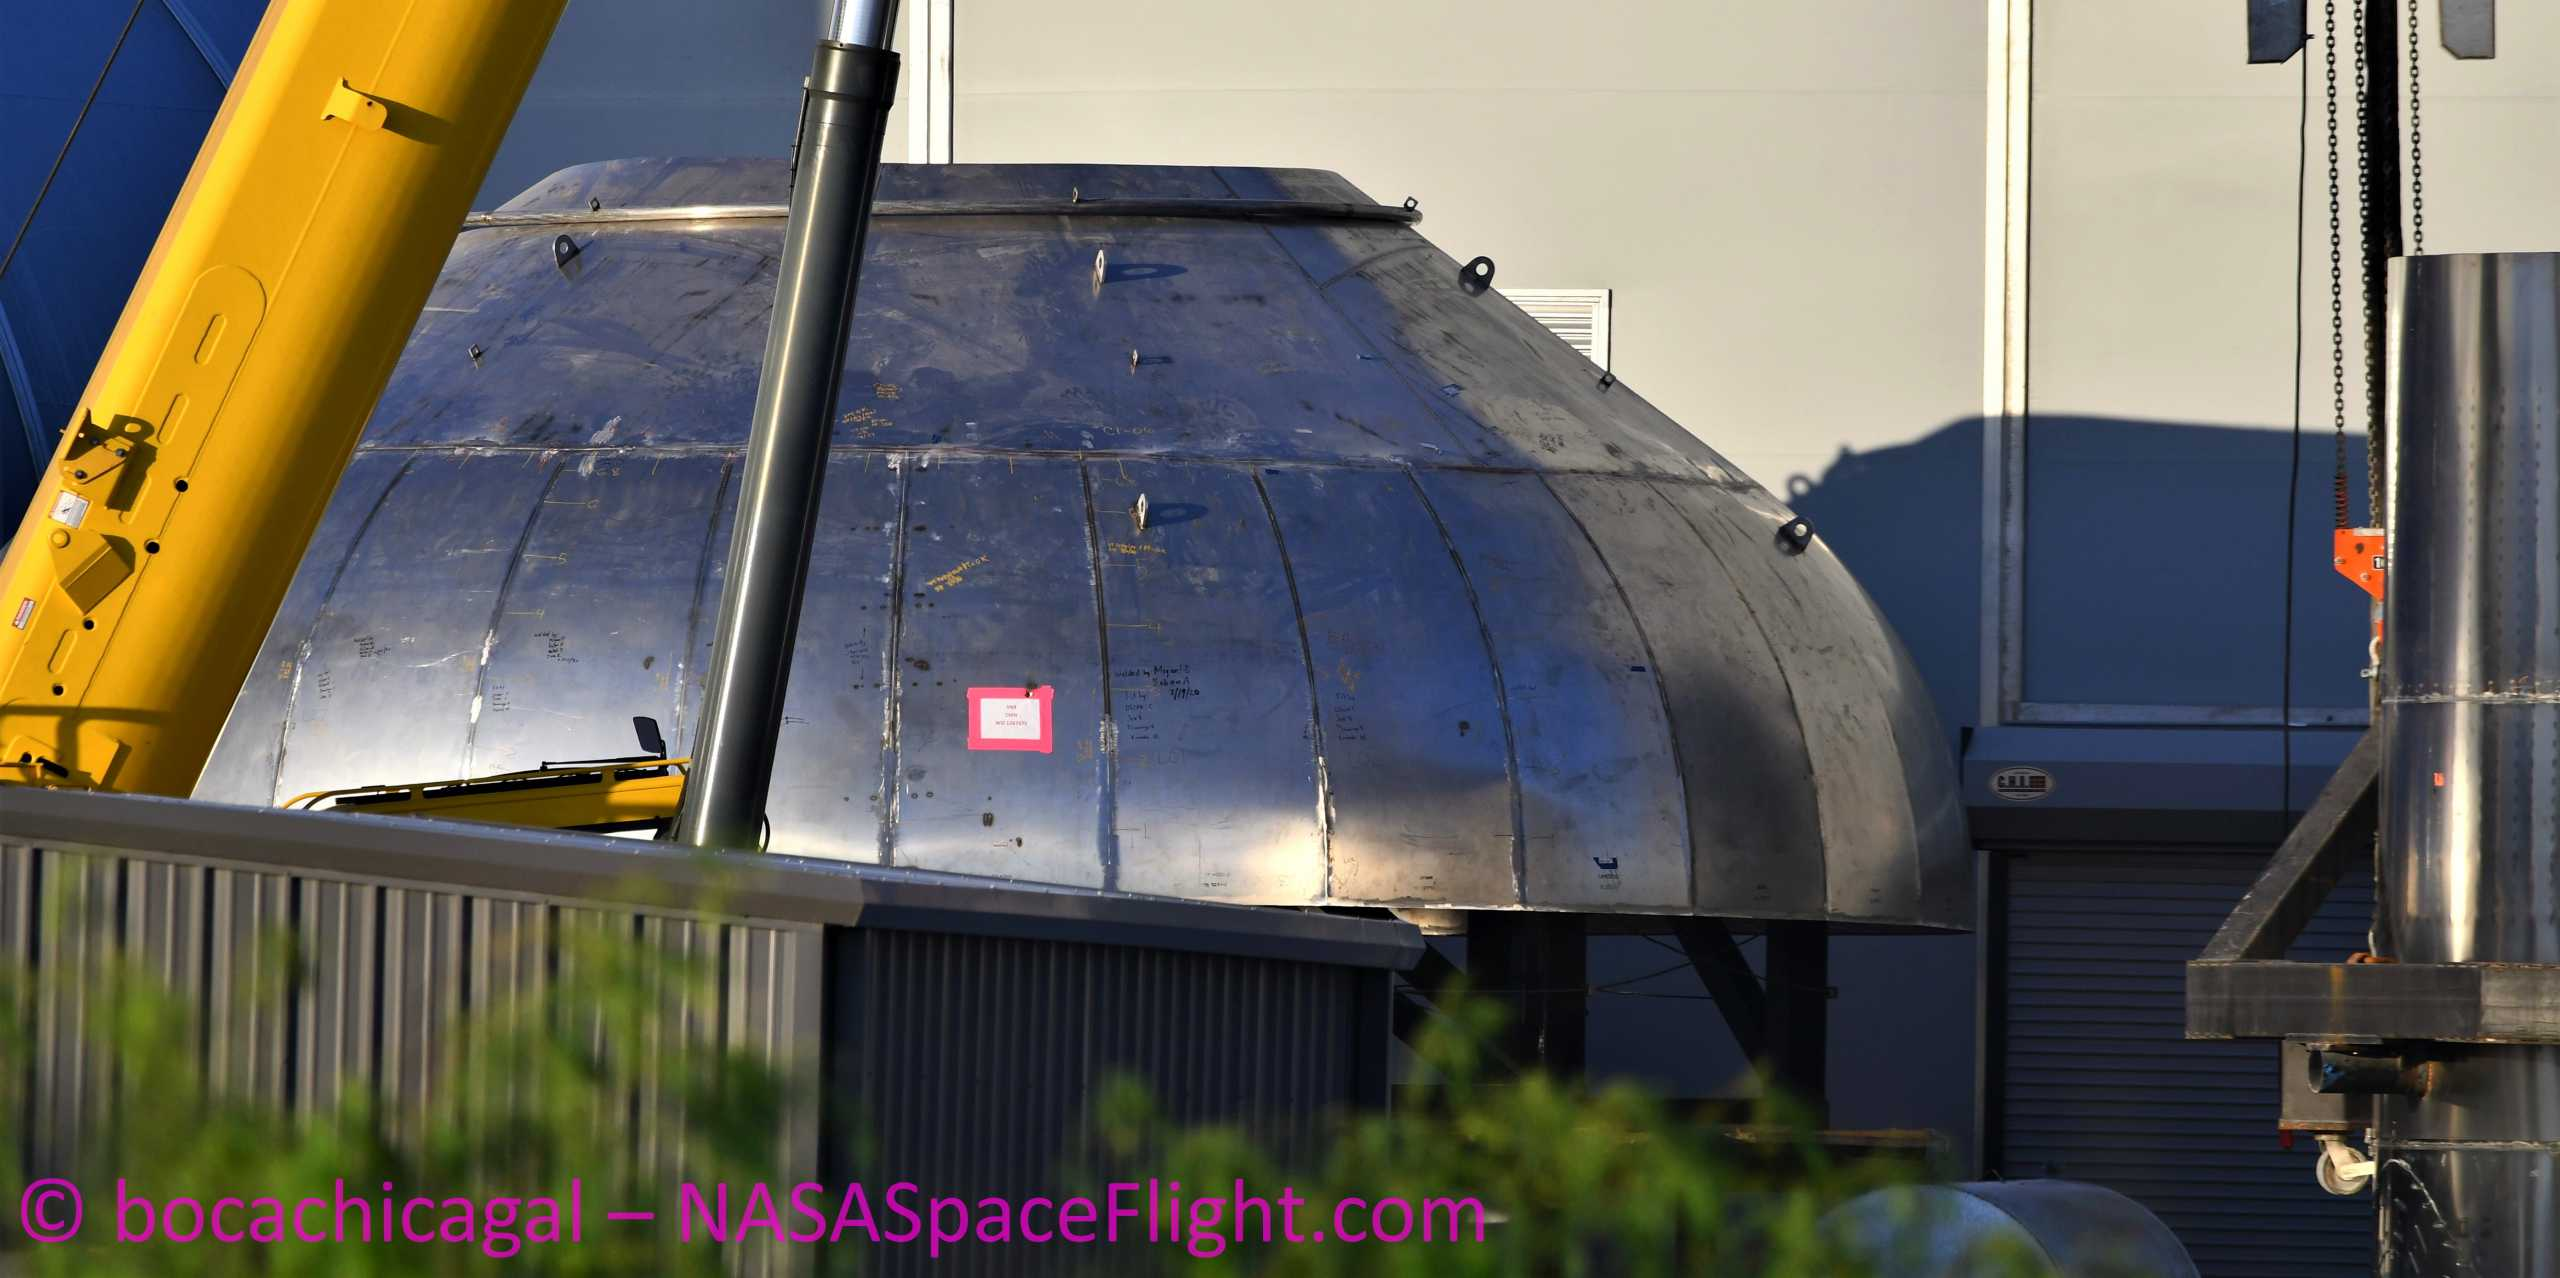 Starship Boca Chica 081520 (NASASpaceflight – bocachicagal) SN9 common dome work 1 crop (c)